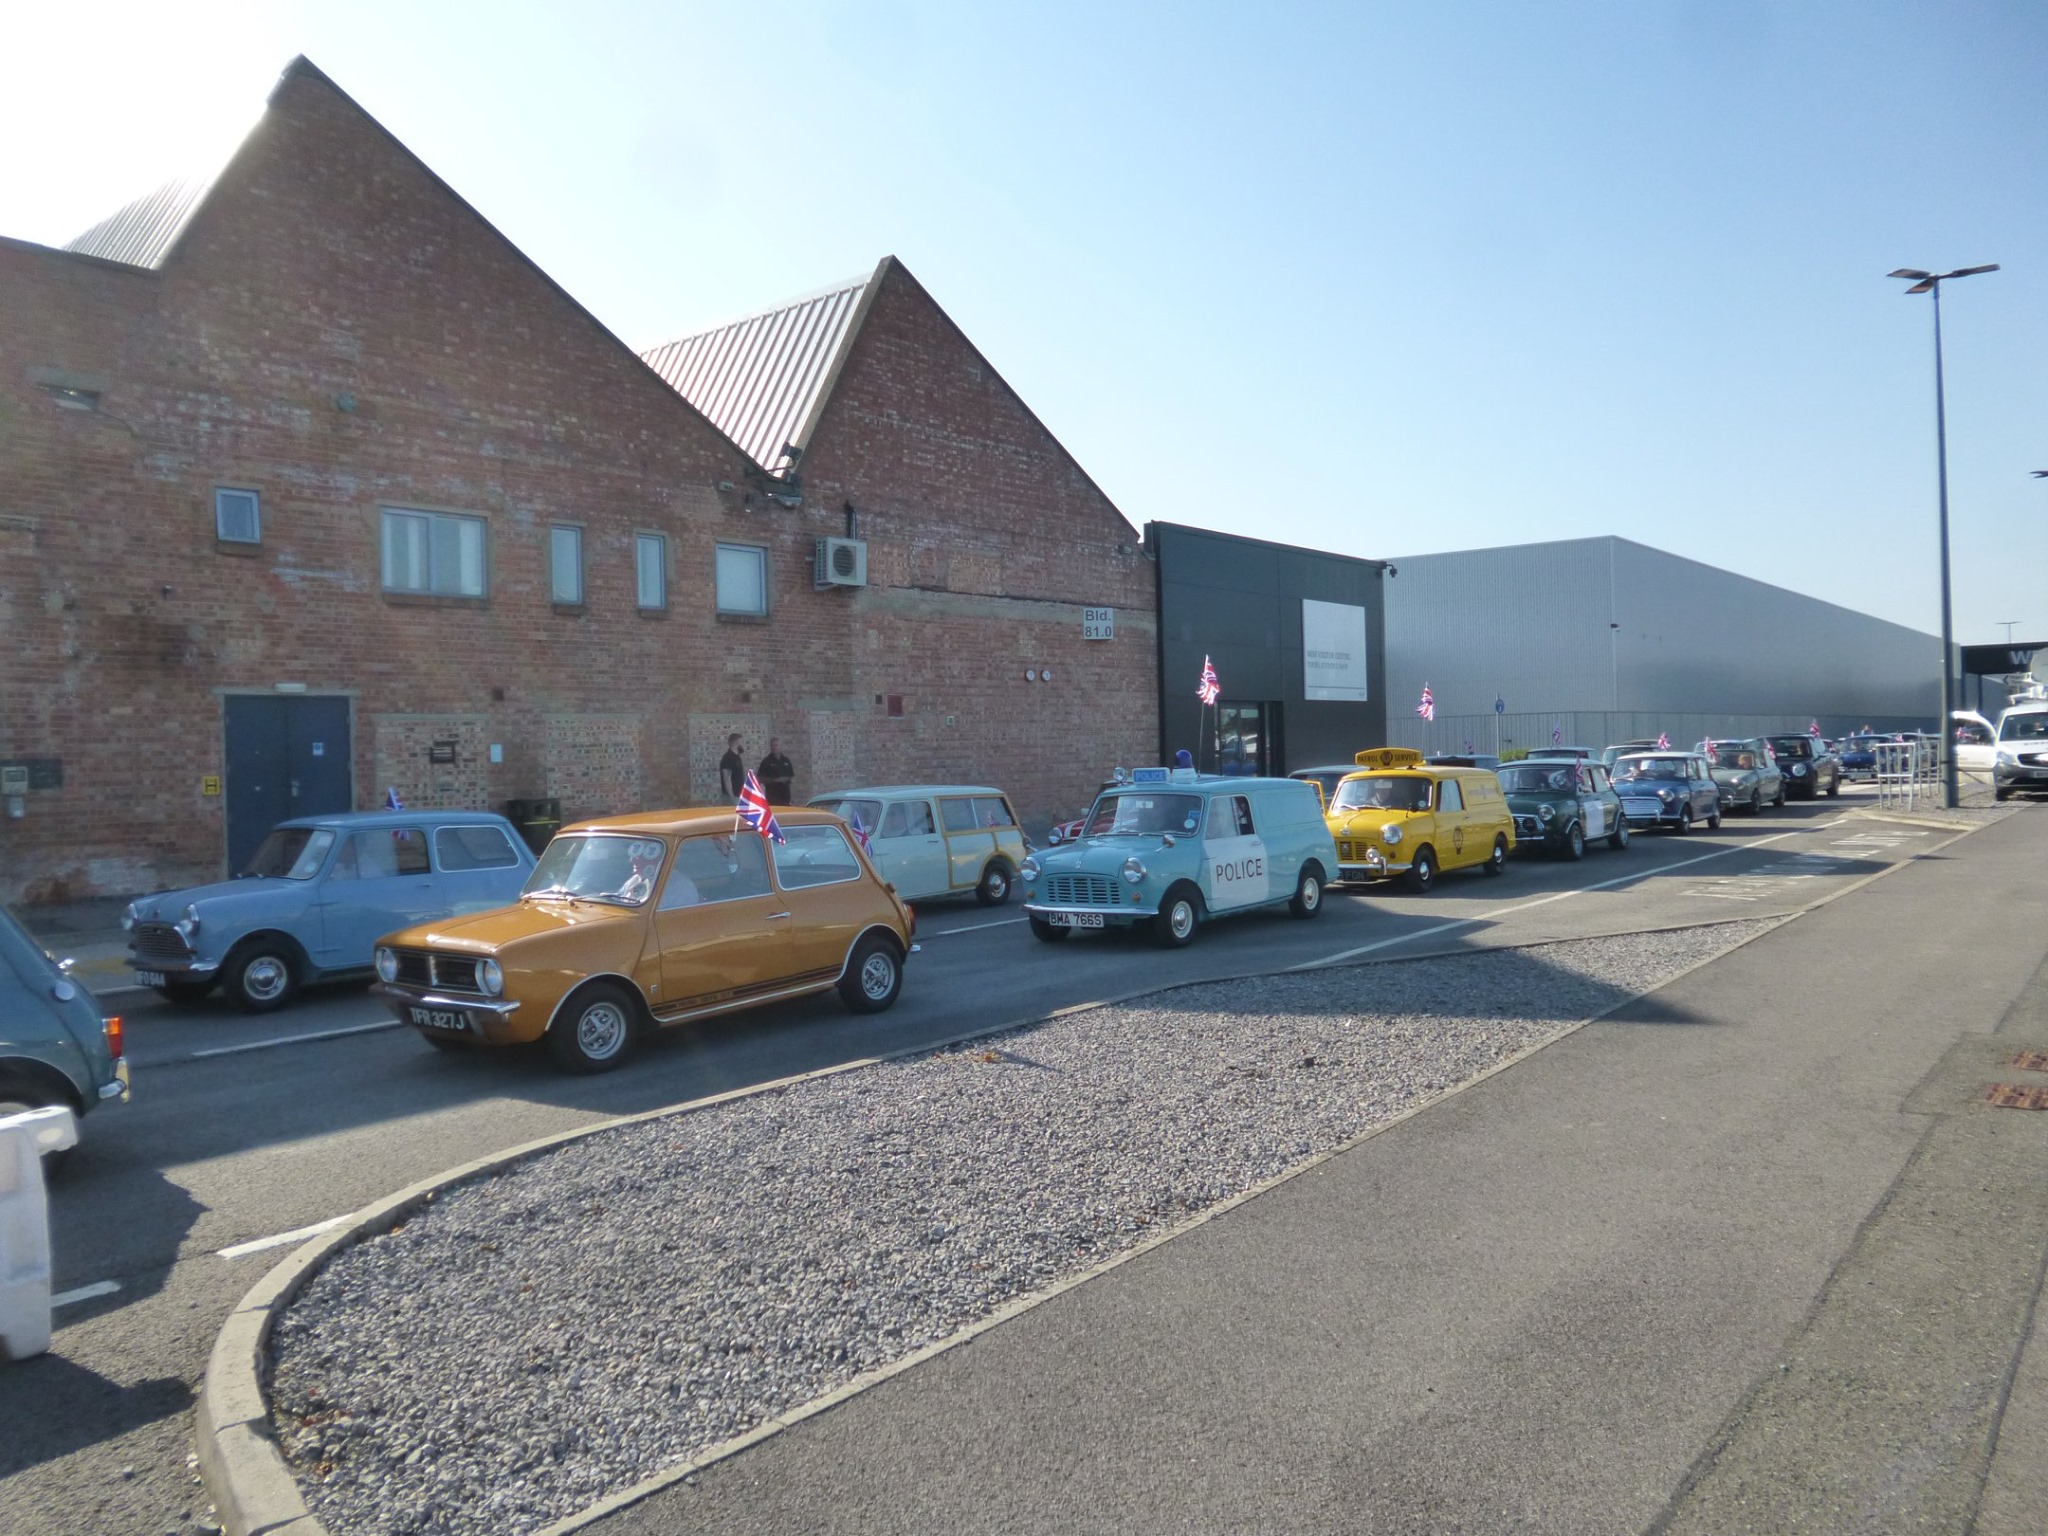 The Cavalcade leaving the factory with many minis of varying style